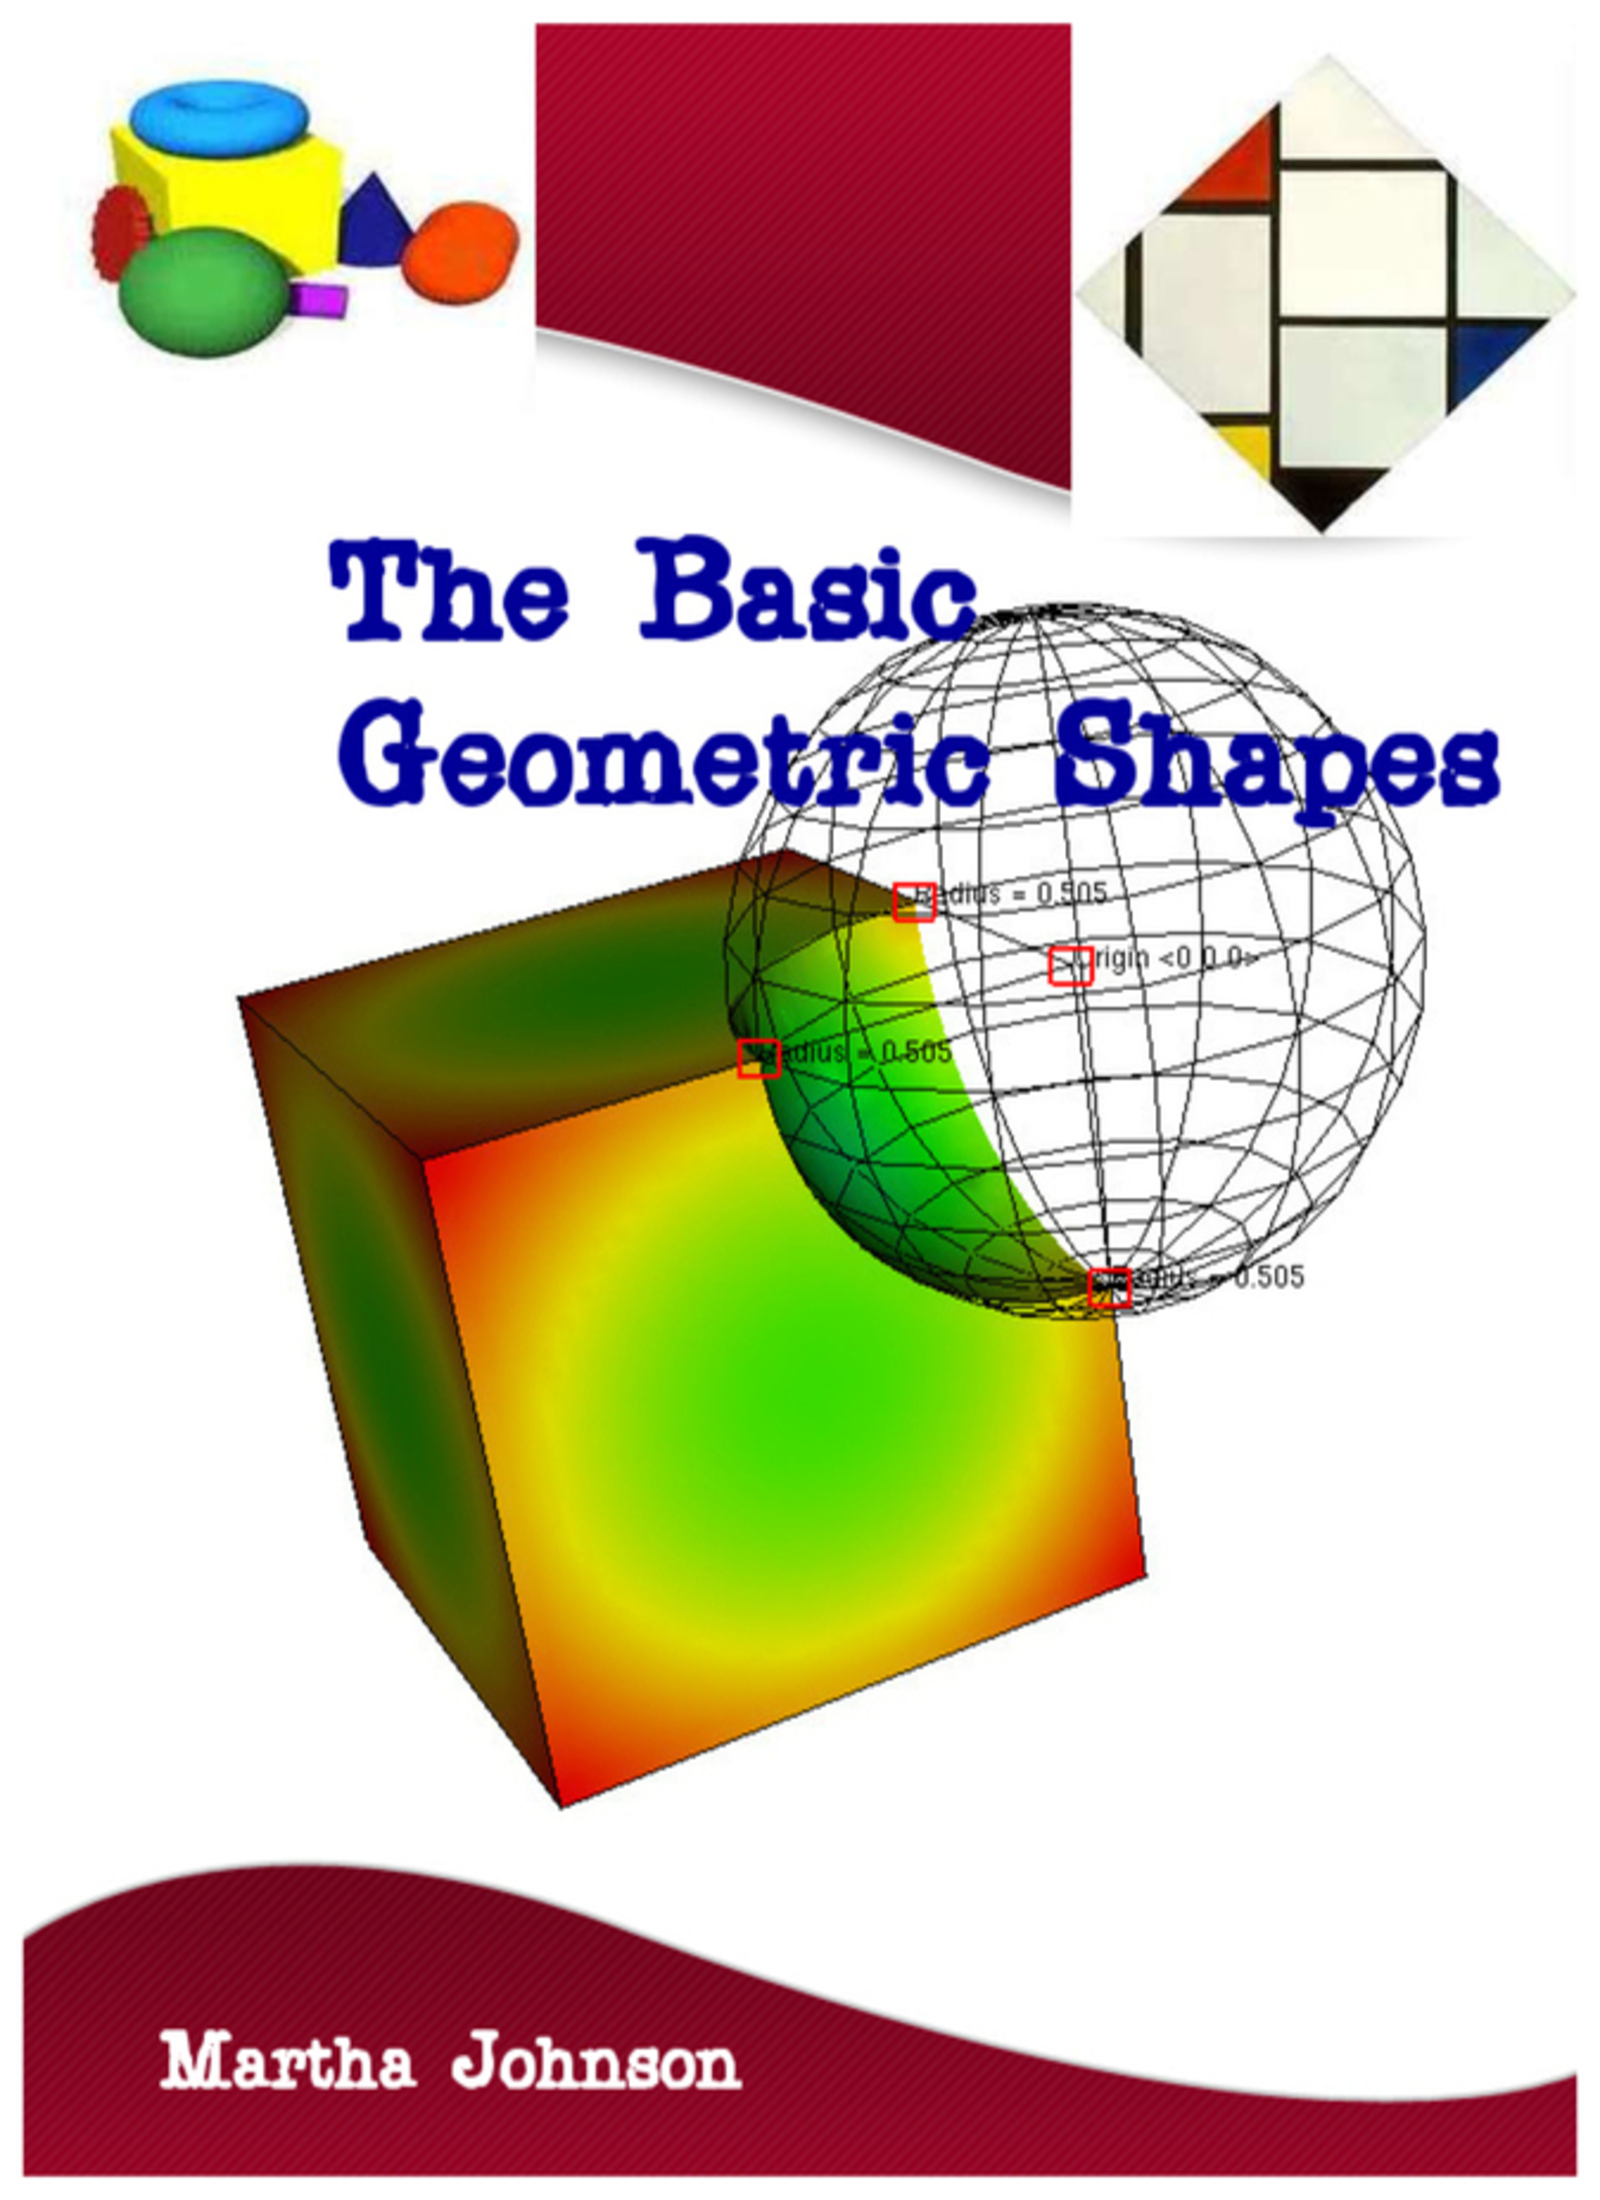 The Basic Geometric Shapes